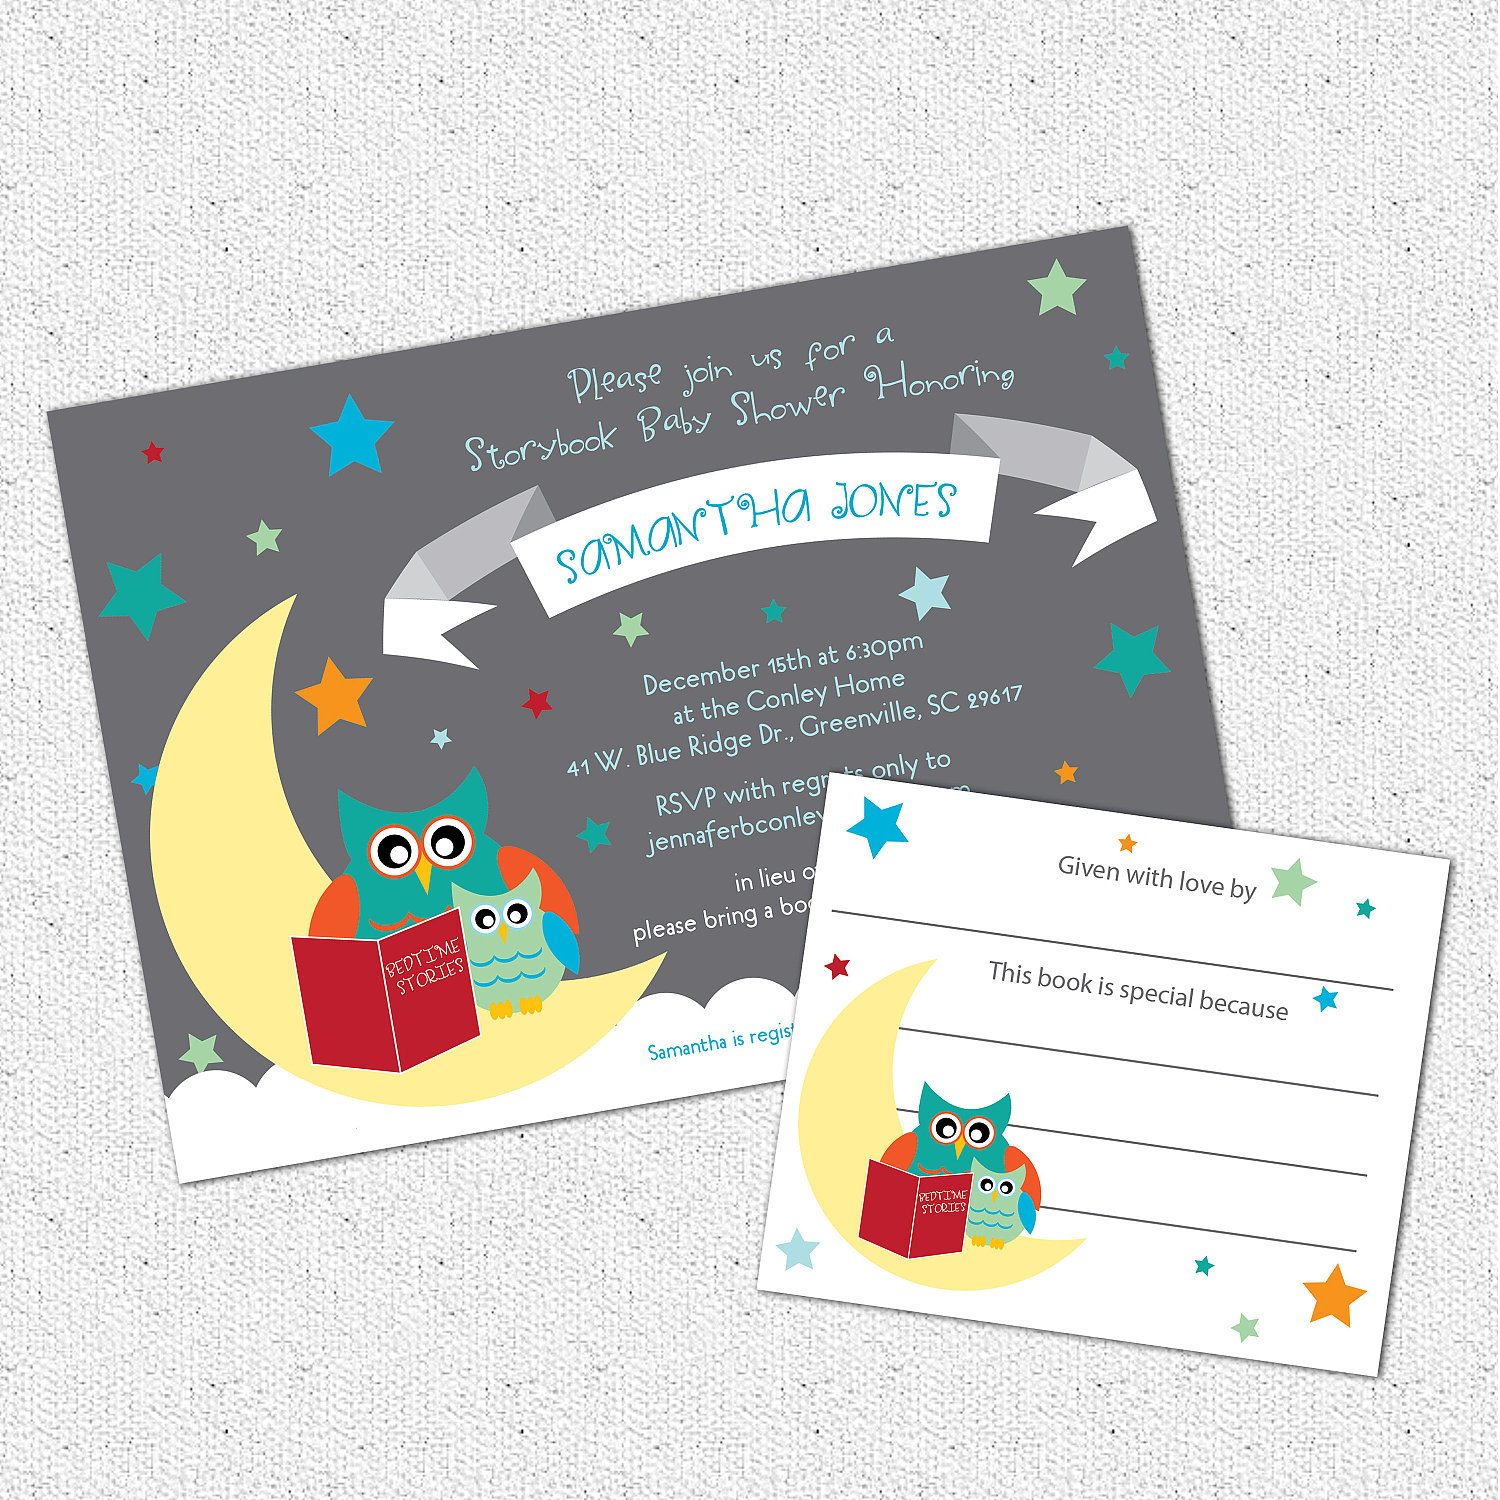 How To Create Book Themed Baby Shower Invitations Free Outstanding Appearance Tips For Choosing Book Themed Baby Shower Invitations Templates | Egreetingecards.com